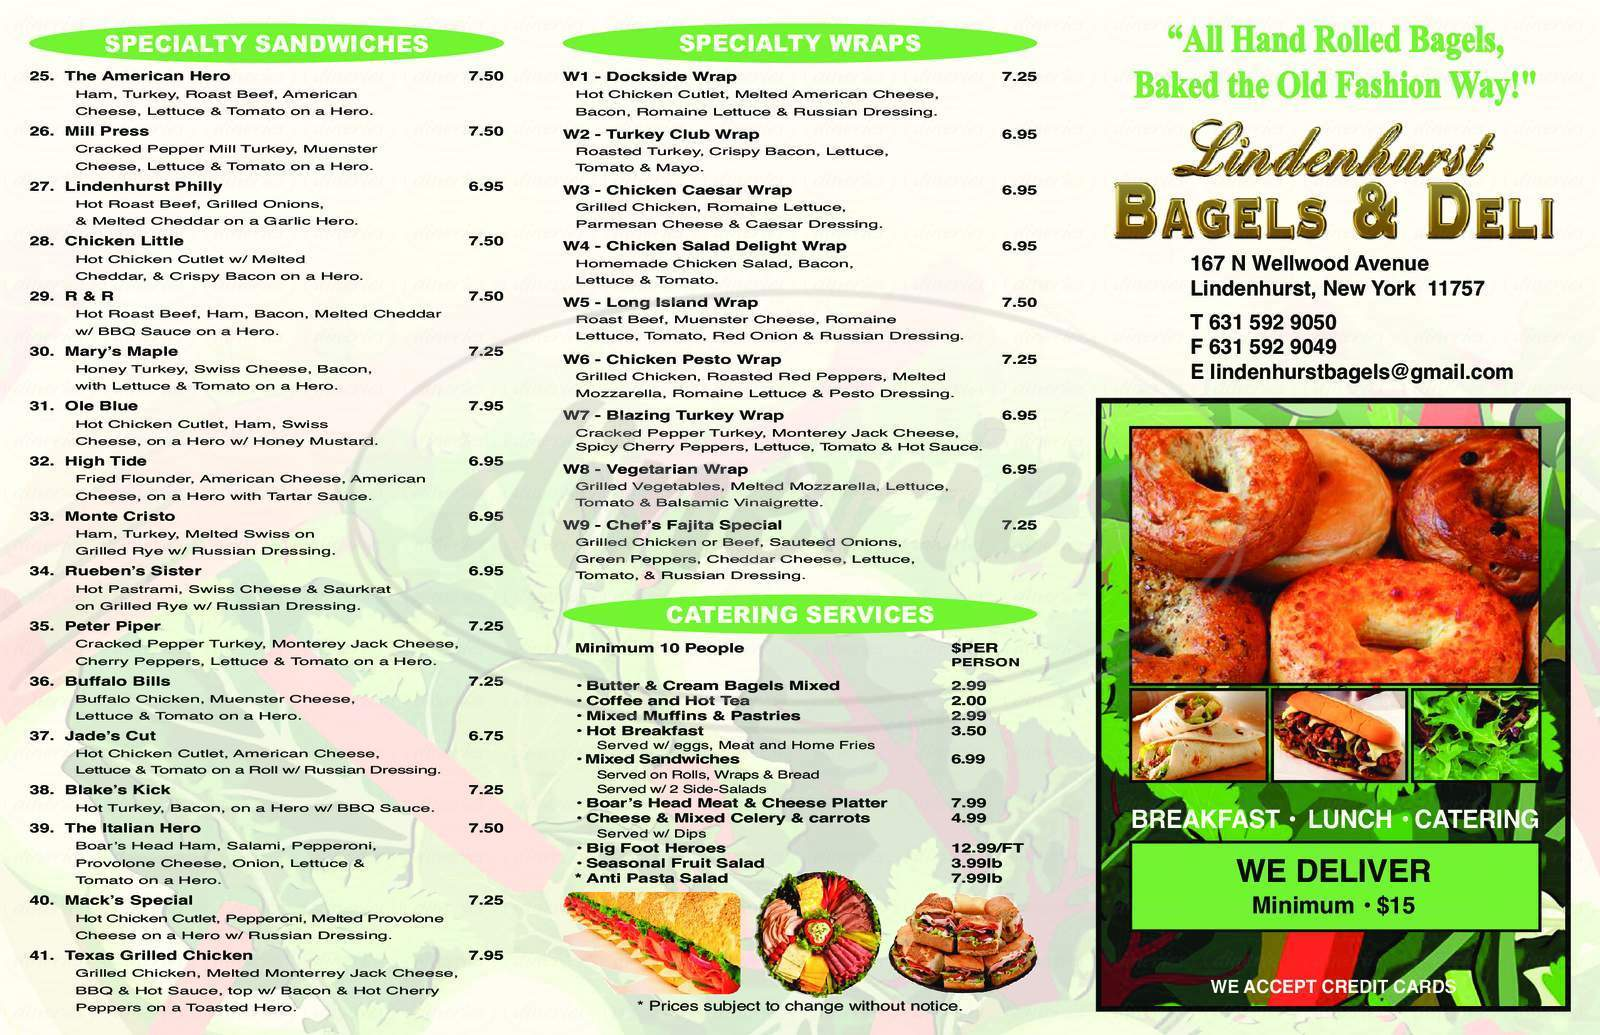 menu for Lindenhurst Bagels and Deli